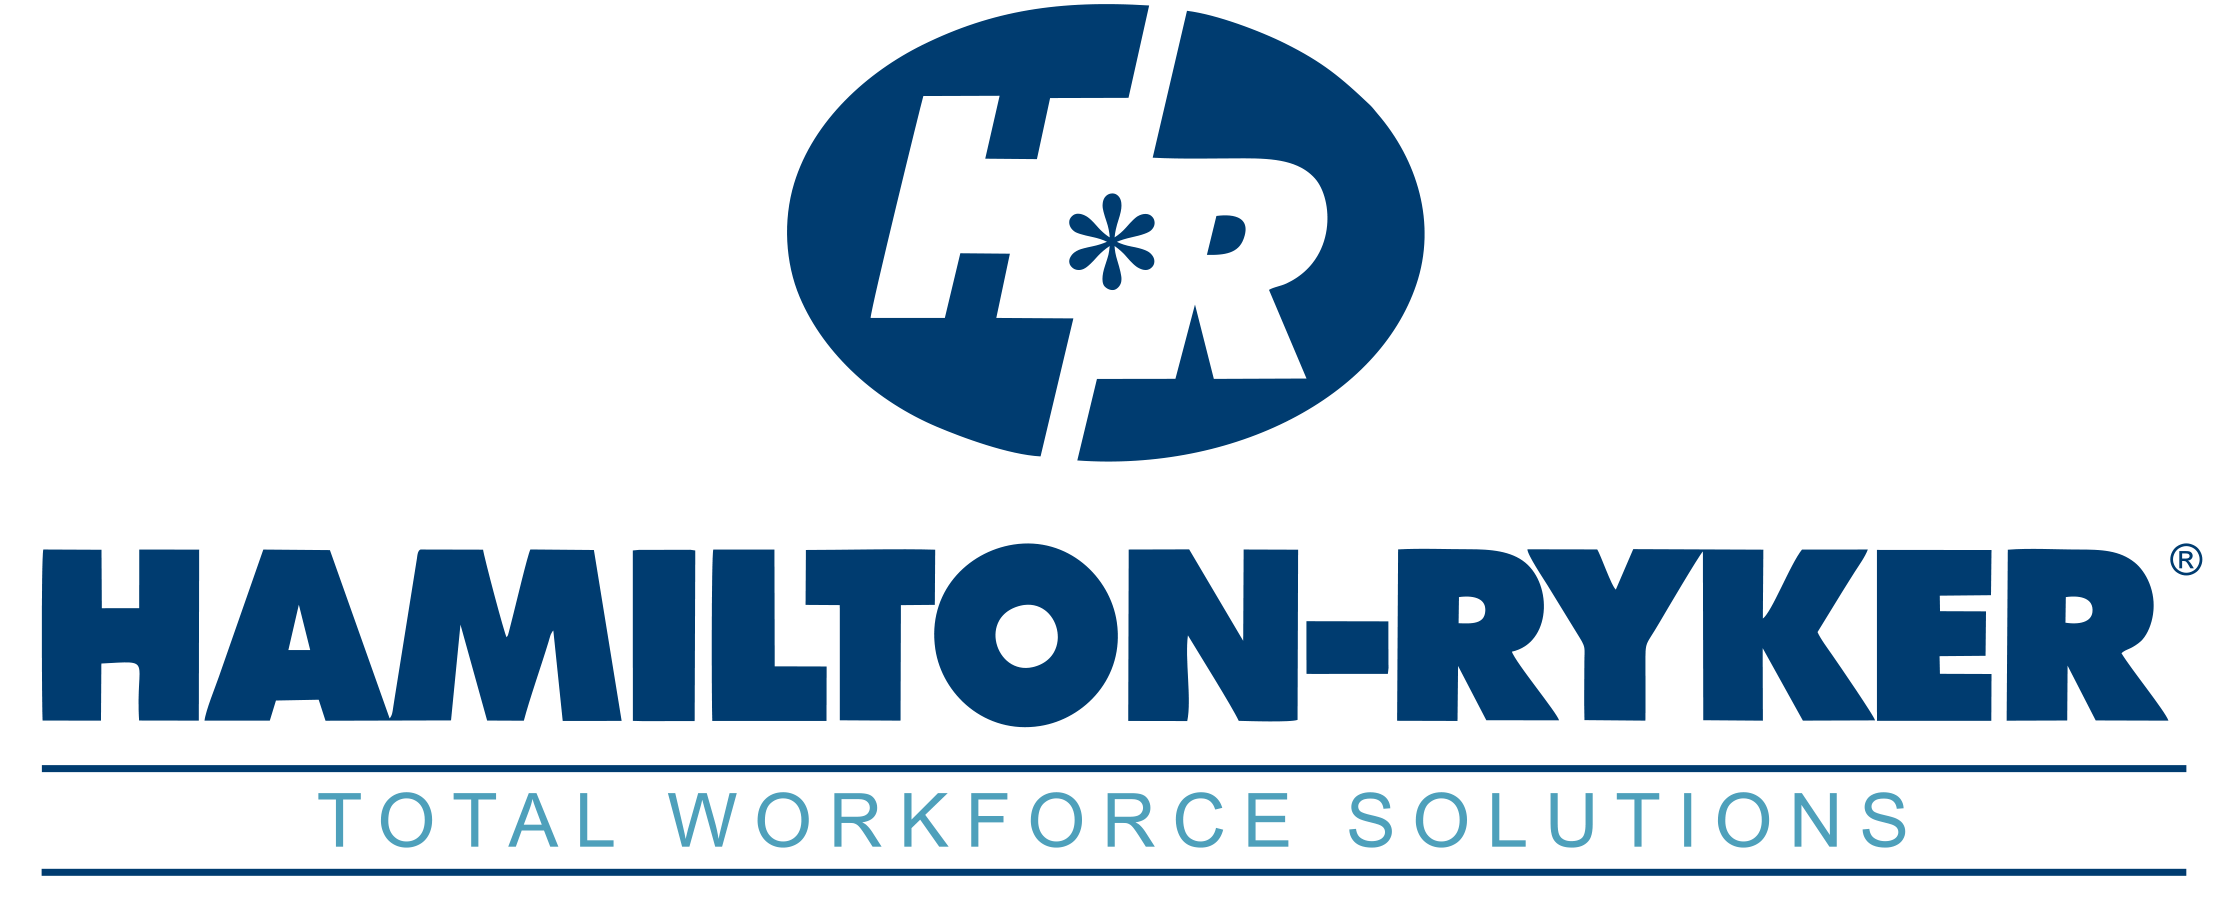 Staffing, HR, Recruiting and Management Solutions | Hamilton